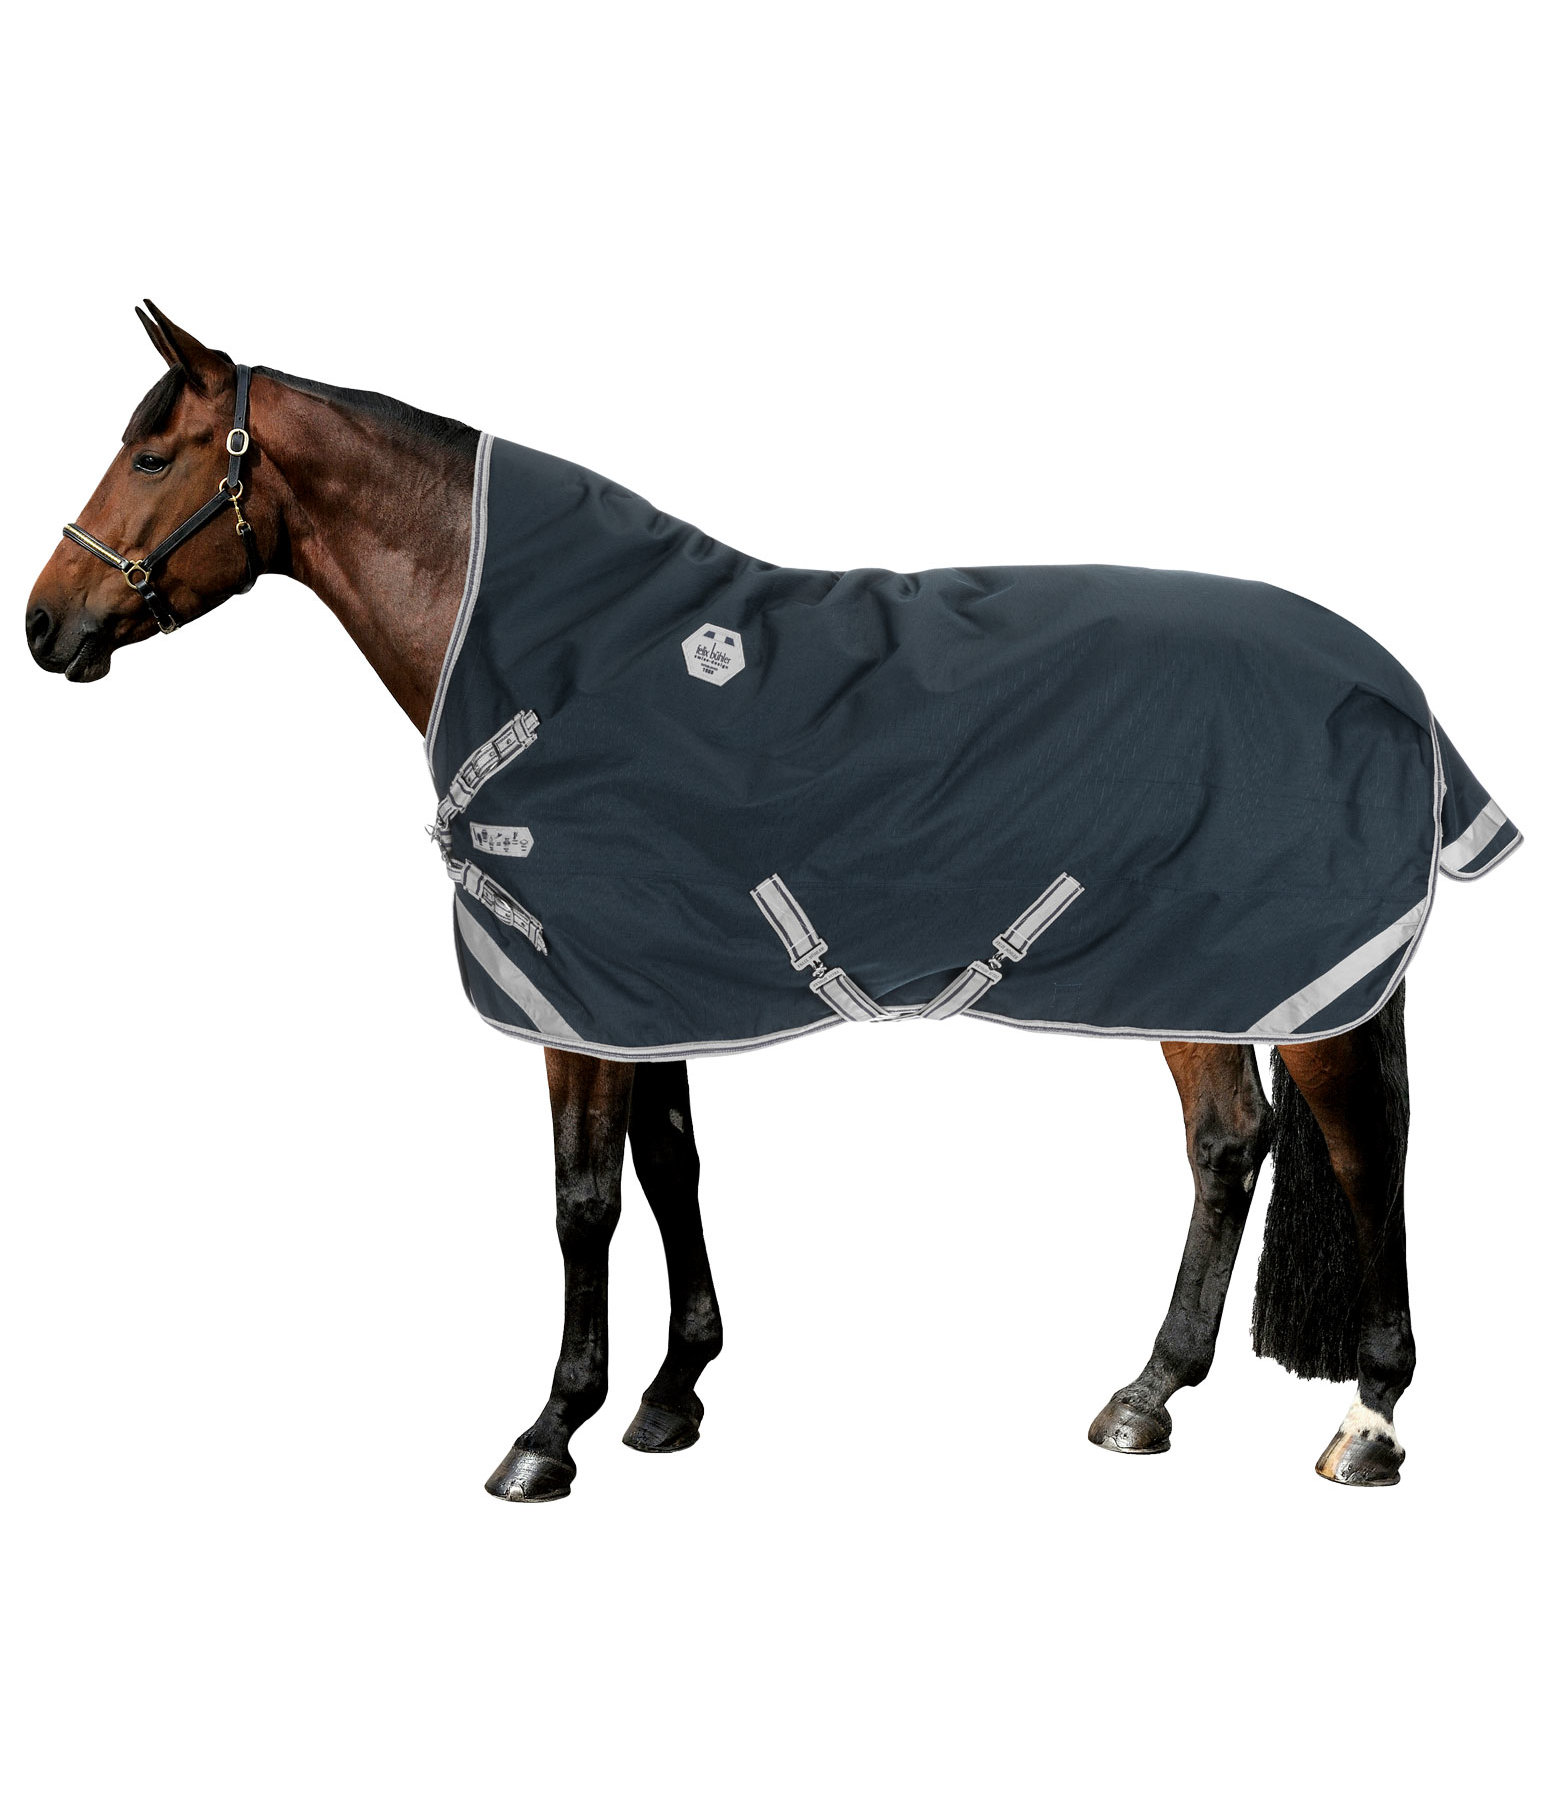 High Neck Turnout Rug Paddock Reflective, 0 g